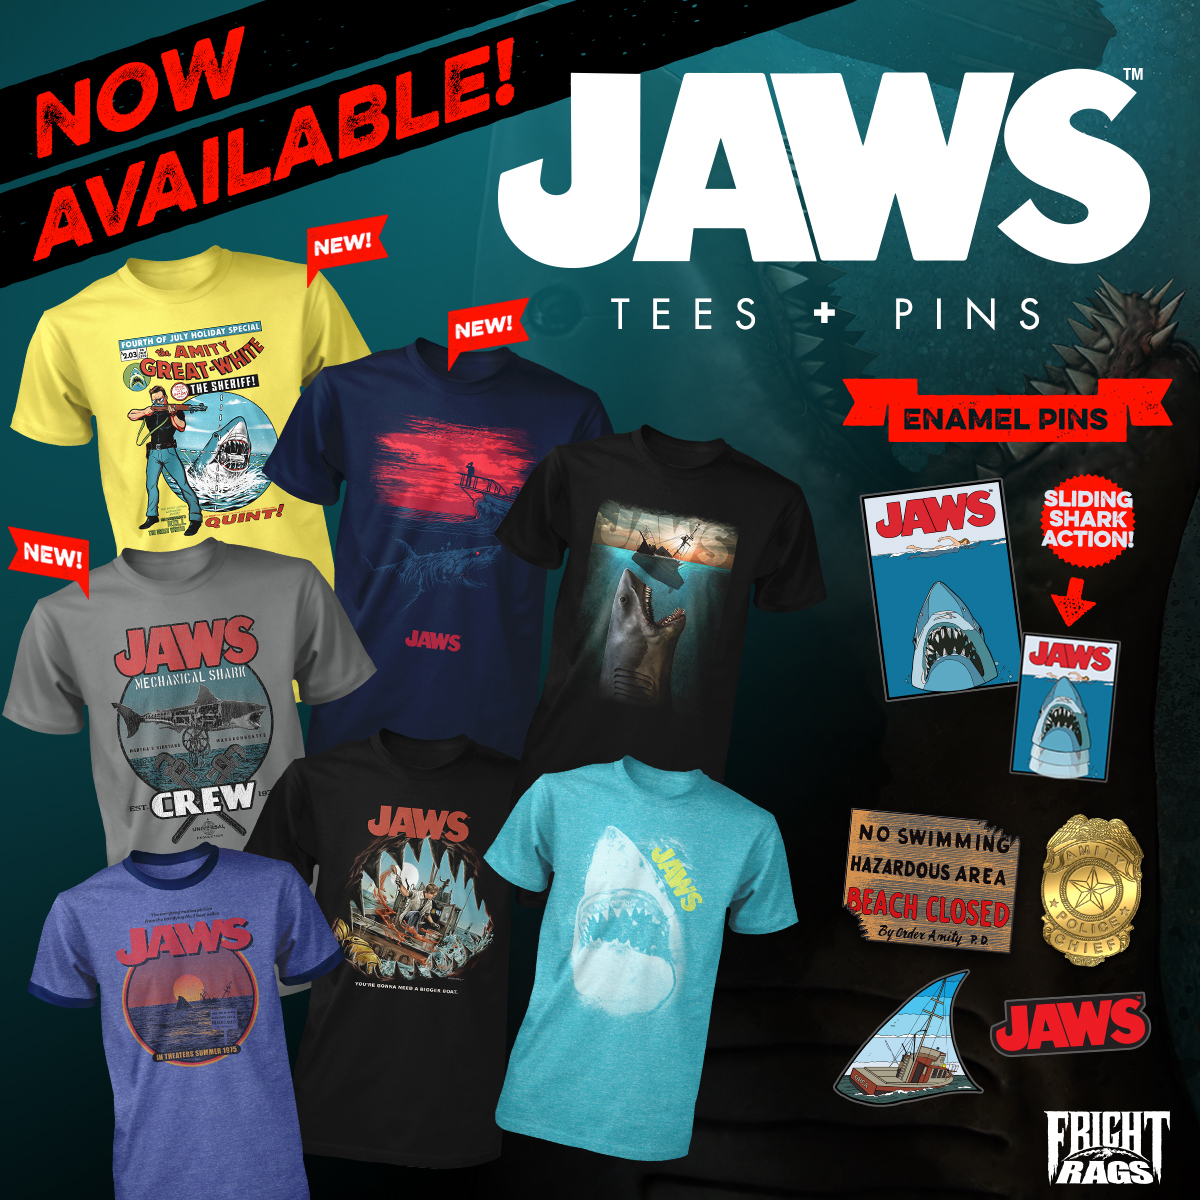 ou're gonna need a bigger closet for Fright-Rags' Jaws collection. There are three new shirt designs - comic book-style art by Timothy Lim, a mechanical shark crew shirt by Christopher Franchi, and an ominous piece by Dan Mumford - and five enamel pins, including the iconic poster artwork with sliding shark action. Four older Jaws shirts have been reprinted as well